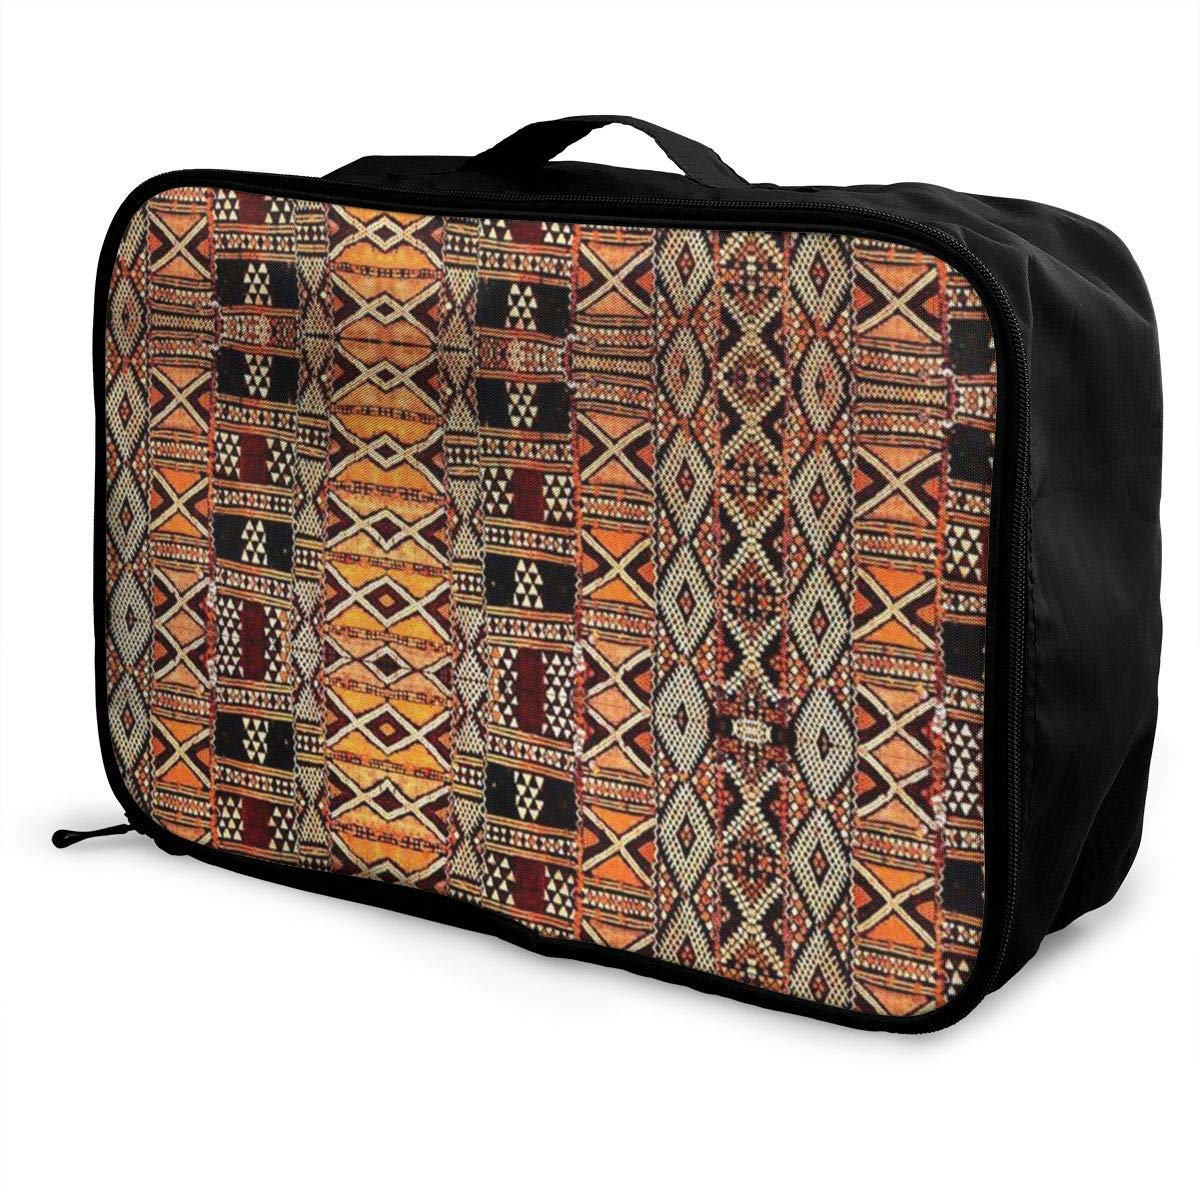 Portable Luggage Duffel Bag Tribal Design Travel Bags Carry-on In Trolley Handle